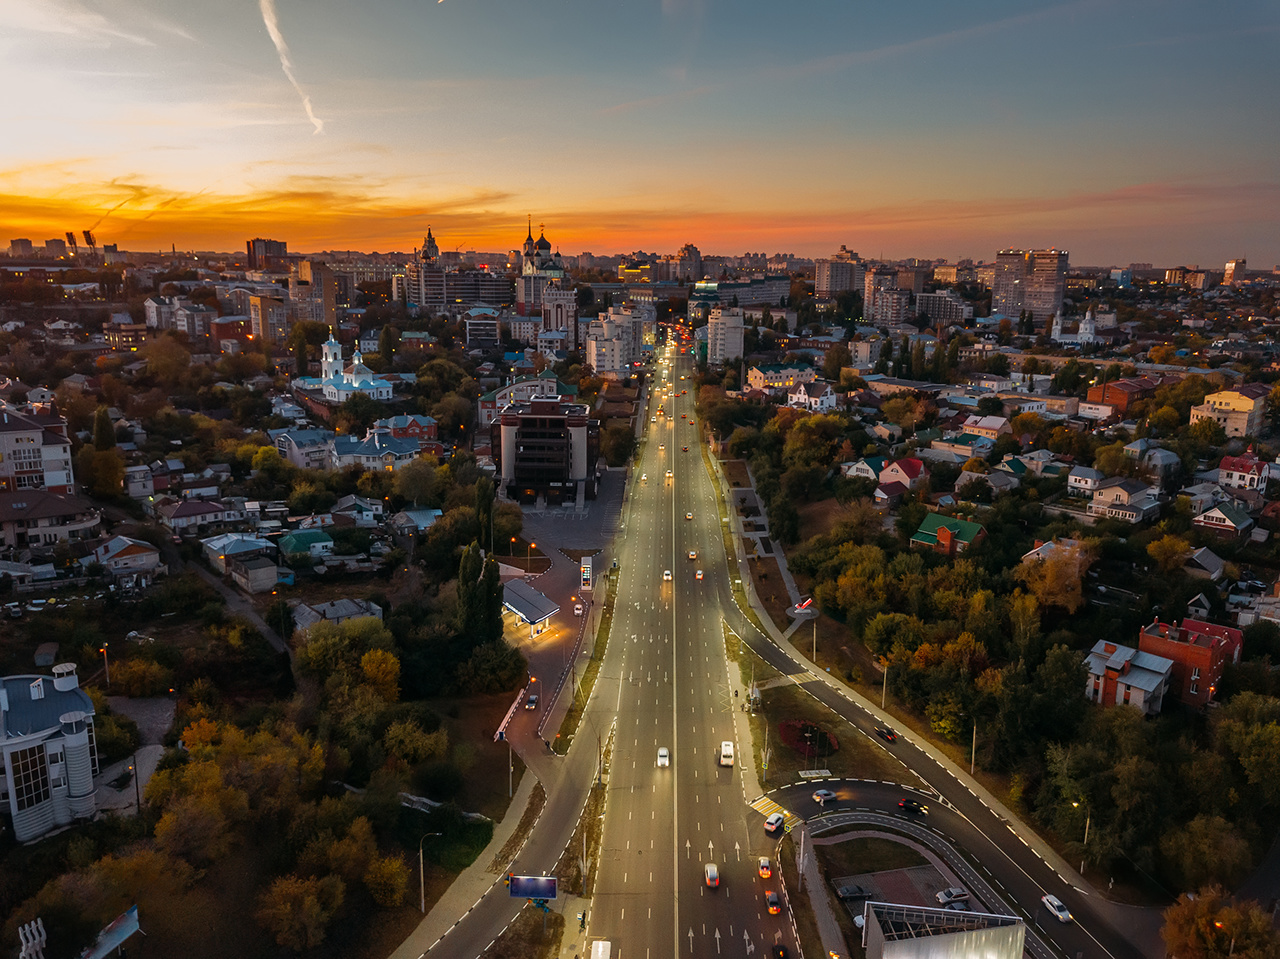 Night Voronezh, aerial view of city with illuminated road.